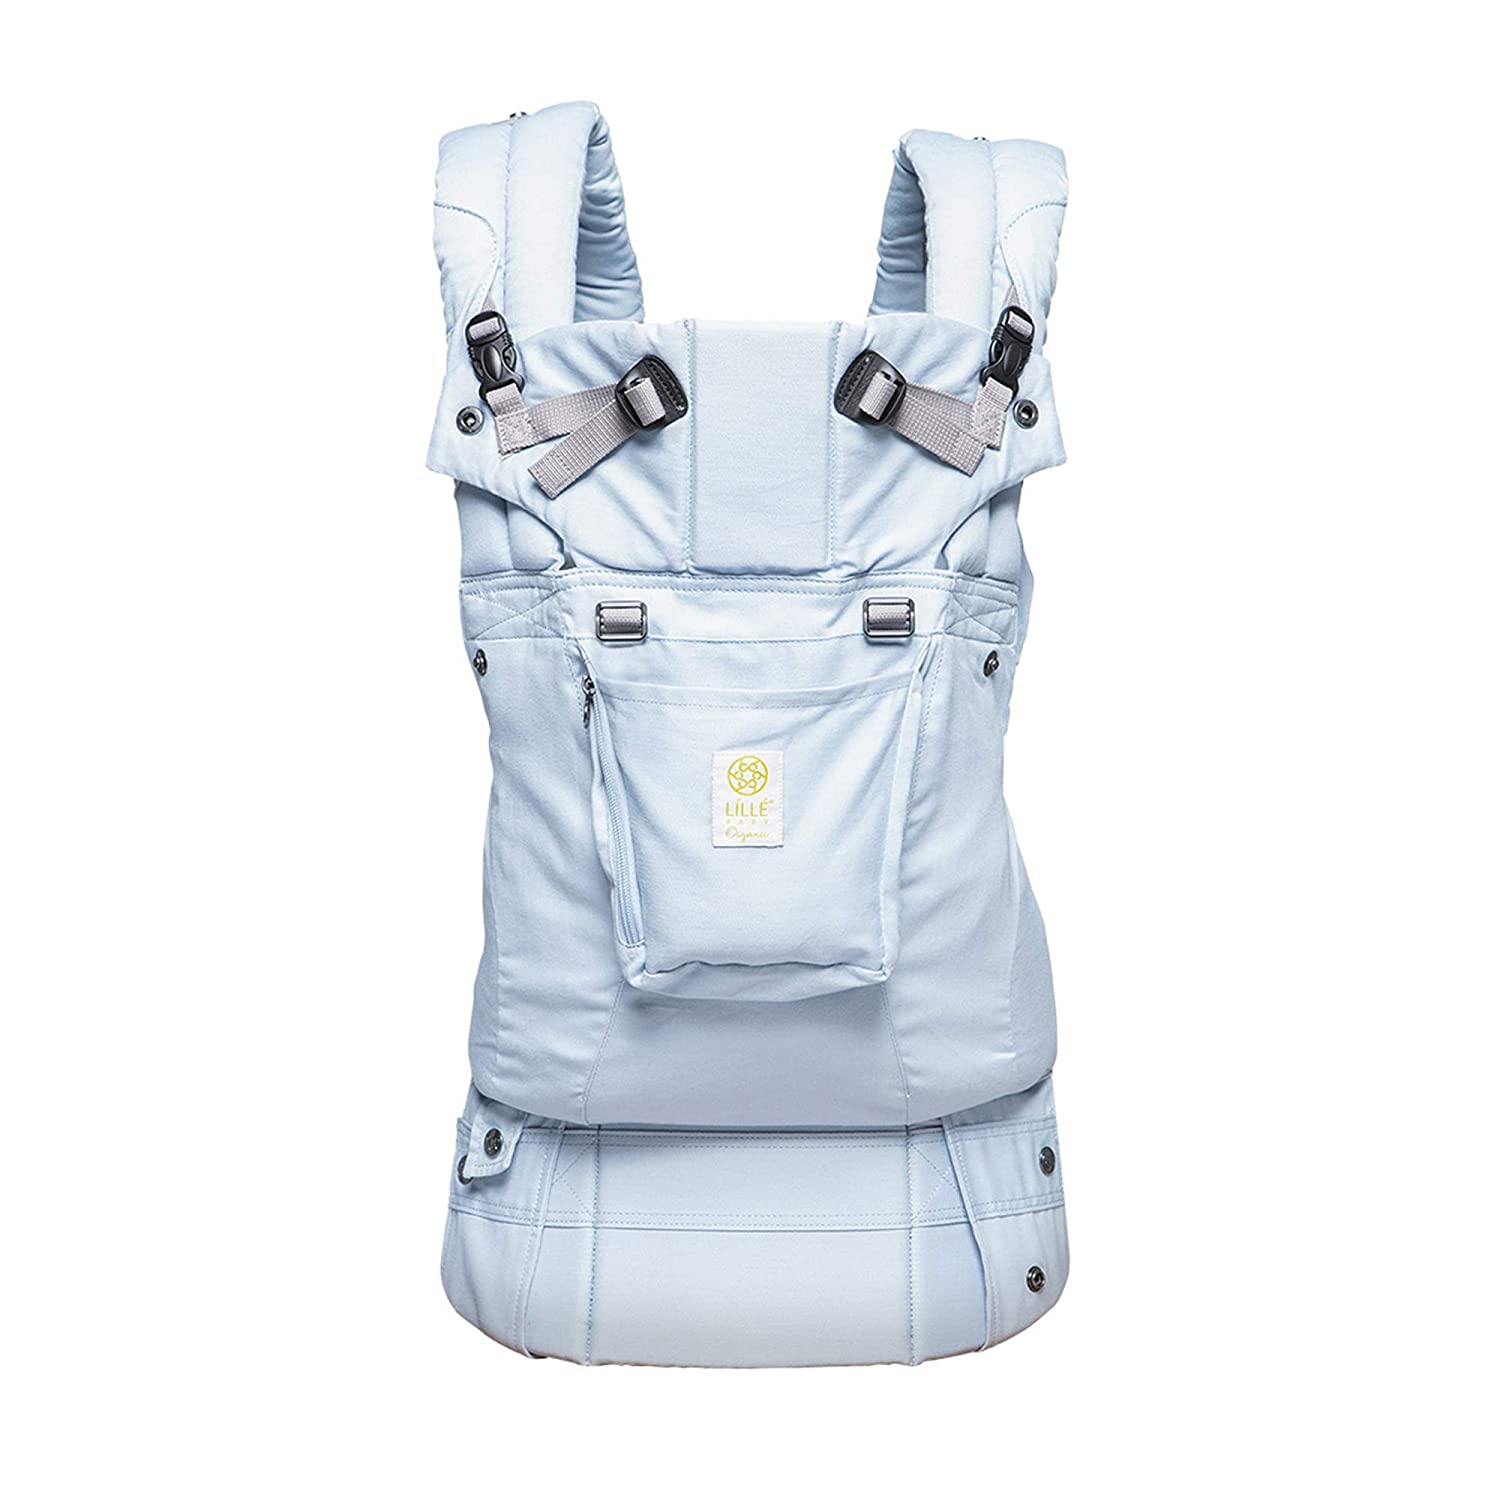 LÍLLÉbaby Organic Cotton Baby Carrier